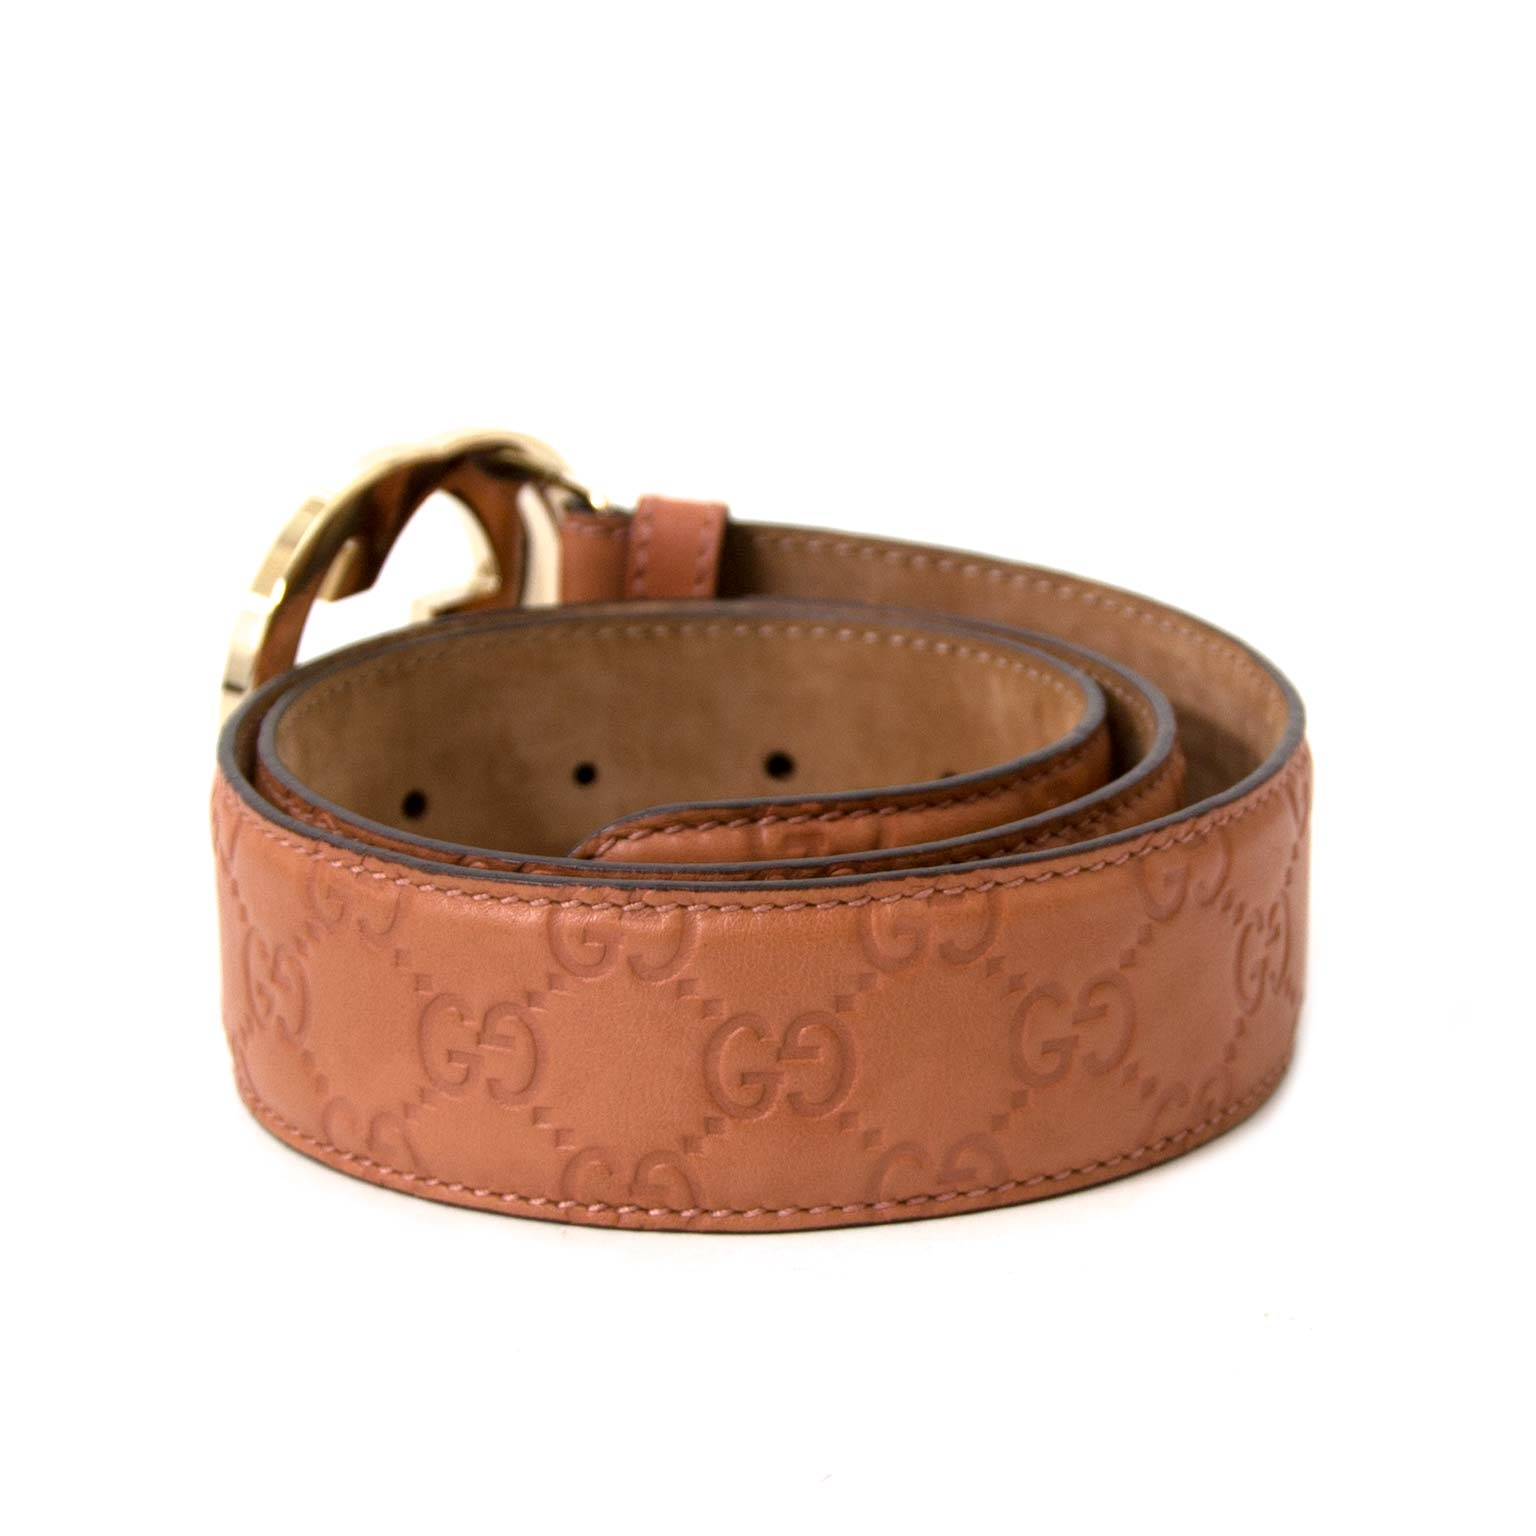 Buy authentic Gucci belts at labellov vintage fashion webshop